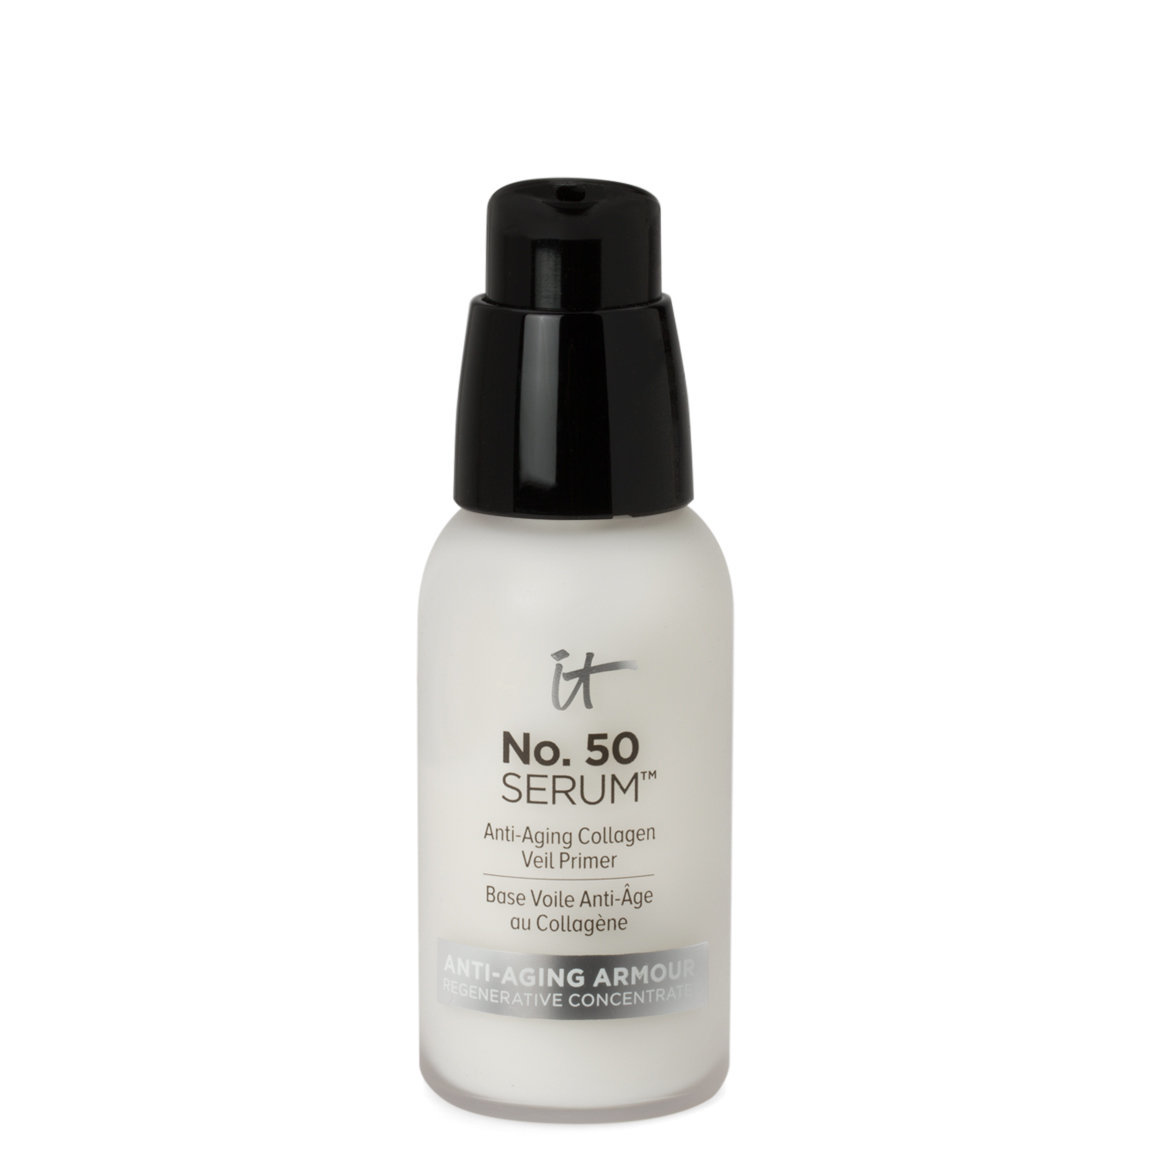 IT Cosmetics  No. 50 Serum Anti-Aging Collagen Veil Primer product smear.